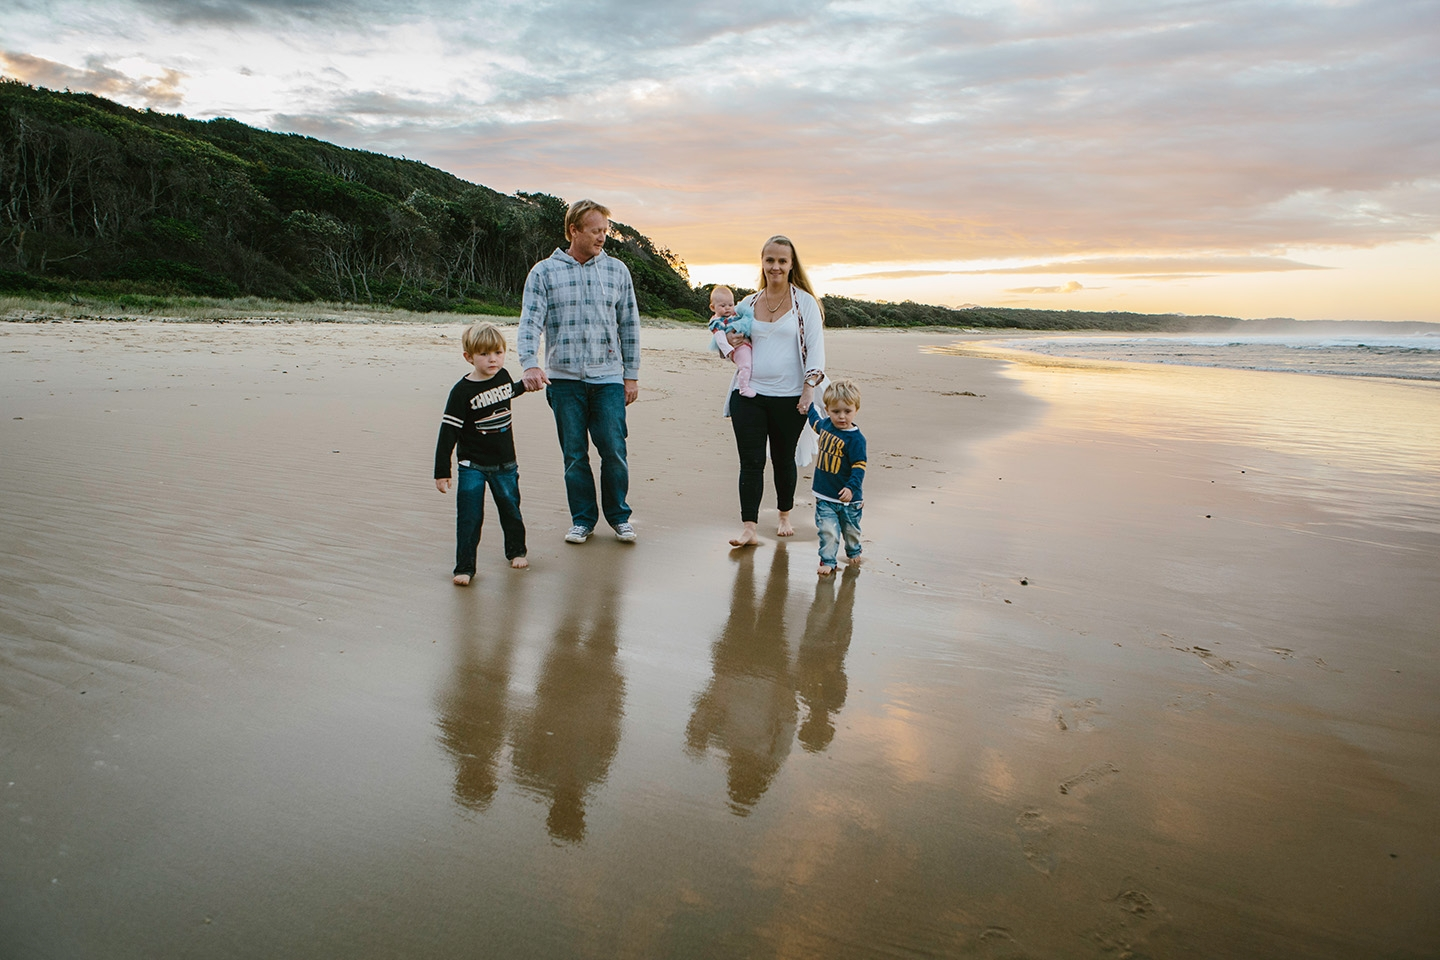 family photography, beach, sunset, children, mid north coast photographer, Alice Payne photography